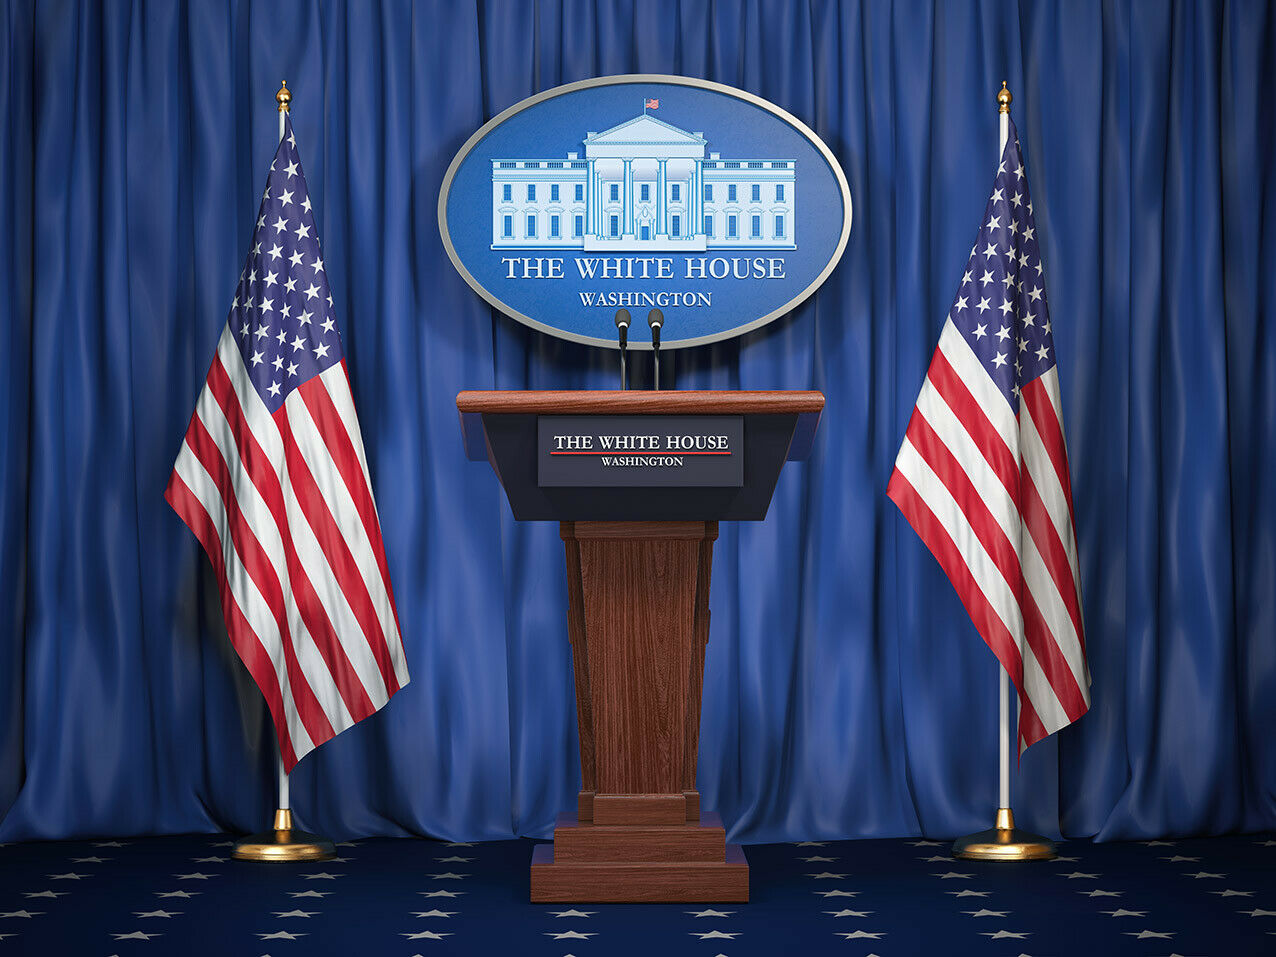 10x8ft Background The President Office White House Photography Backdrop YouTube Backdrops Photo Props Can be Stuck on The Wall LLFU077